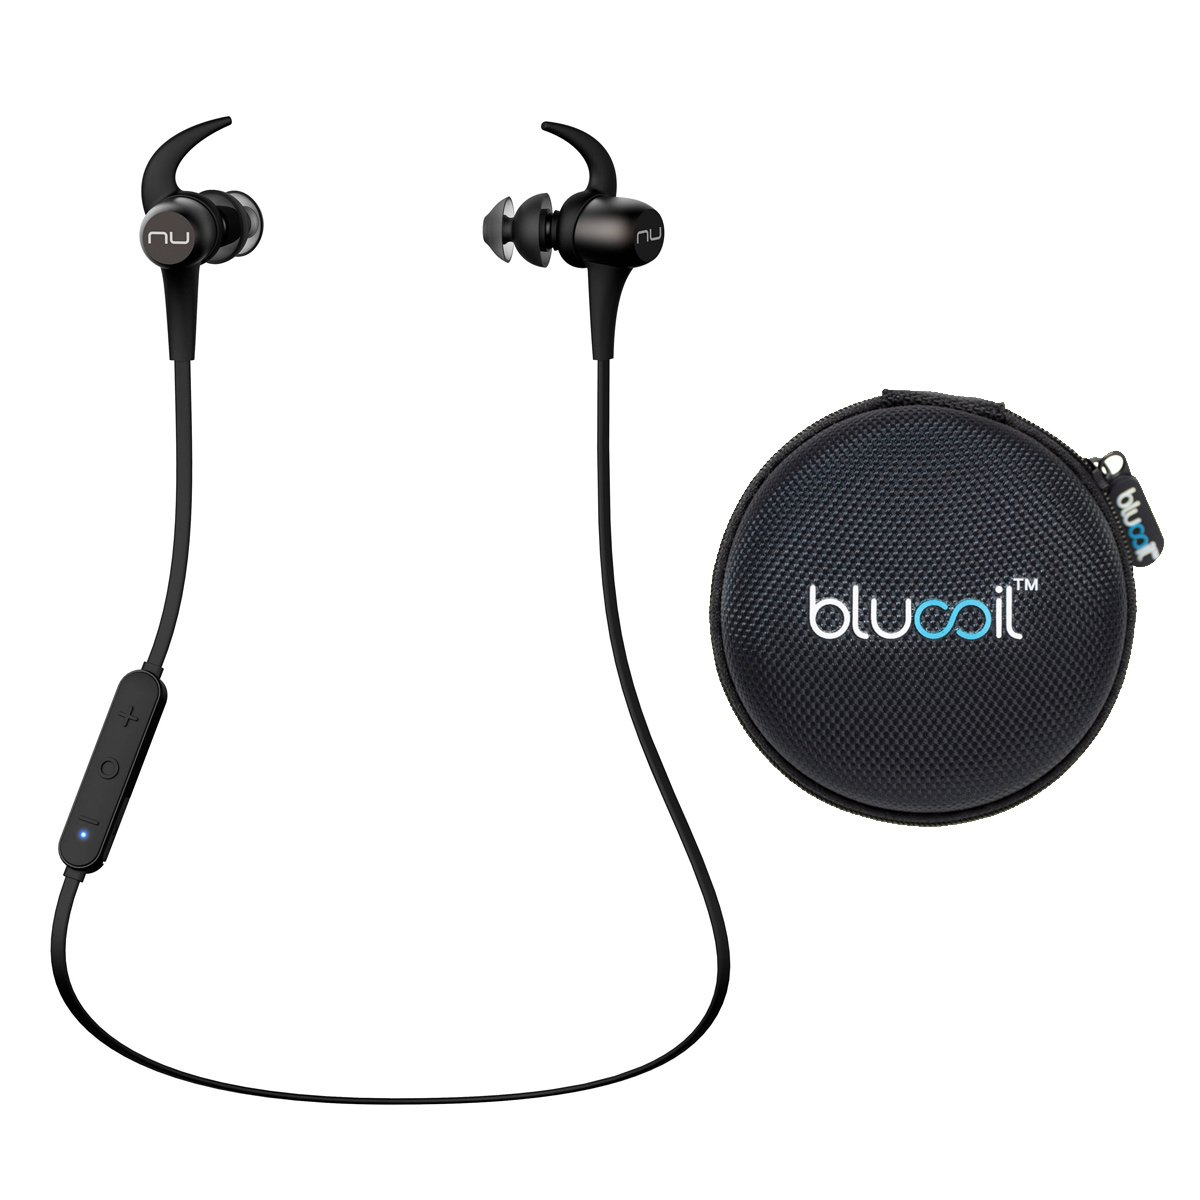 NuForce BE Sport3 Noise Isolation Earphones Wireless Bluetooth aptX AAC with SpinFit Eartips (Gunmetal) -Includes- Blucoil Portable Earphone Hard Case